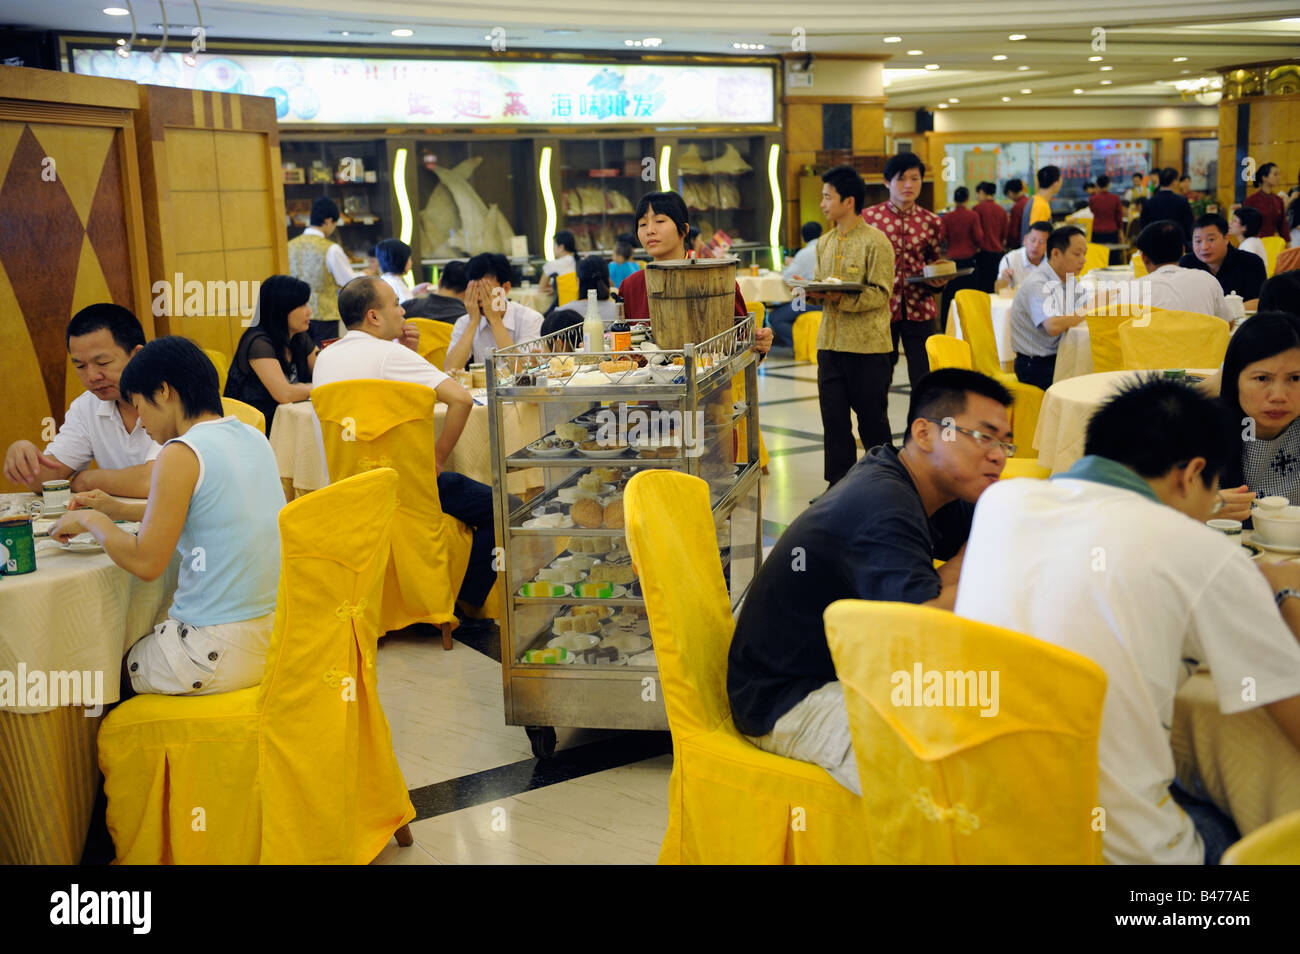 People have Cantonese Dim Sum with tea in a restaurant in Dongguan, Guangdong, China. 20-Sep-2008 - Stock Image